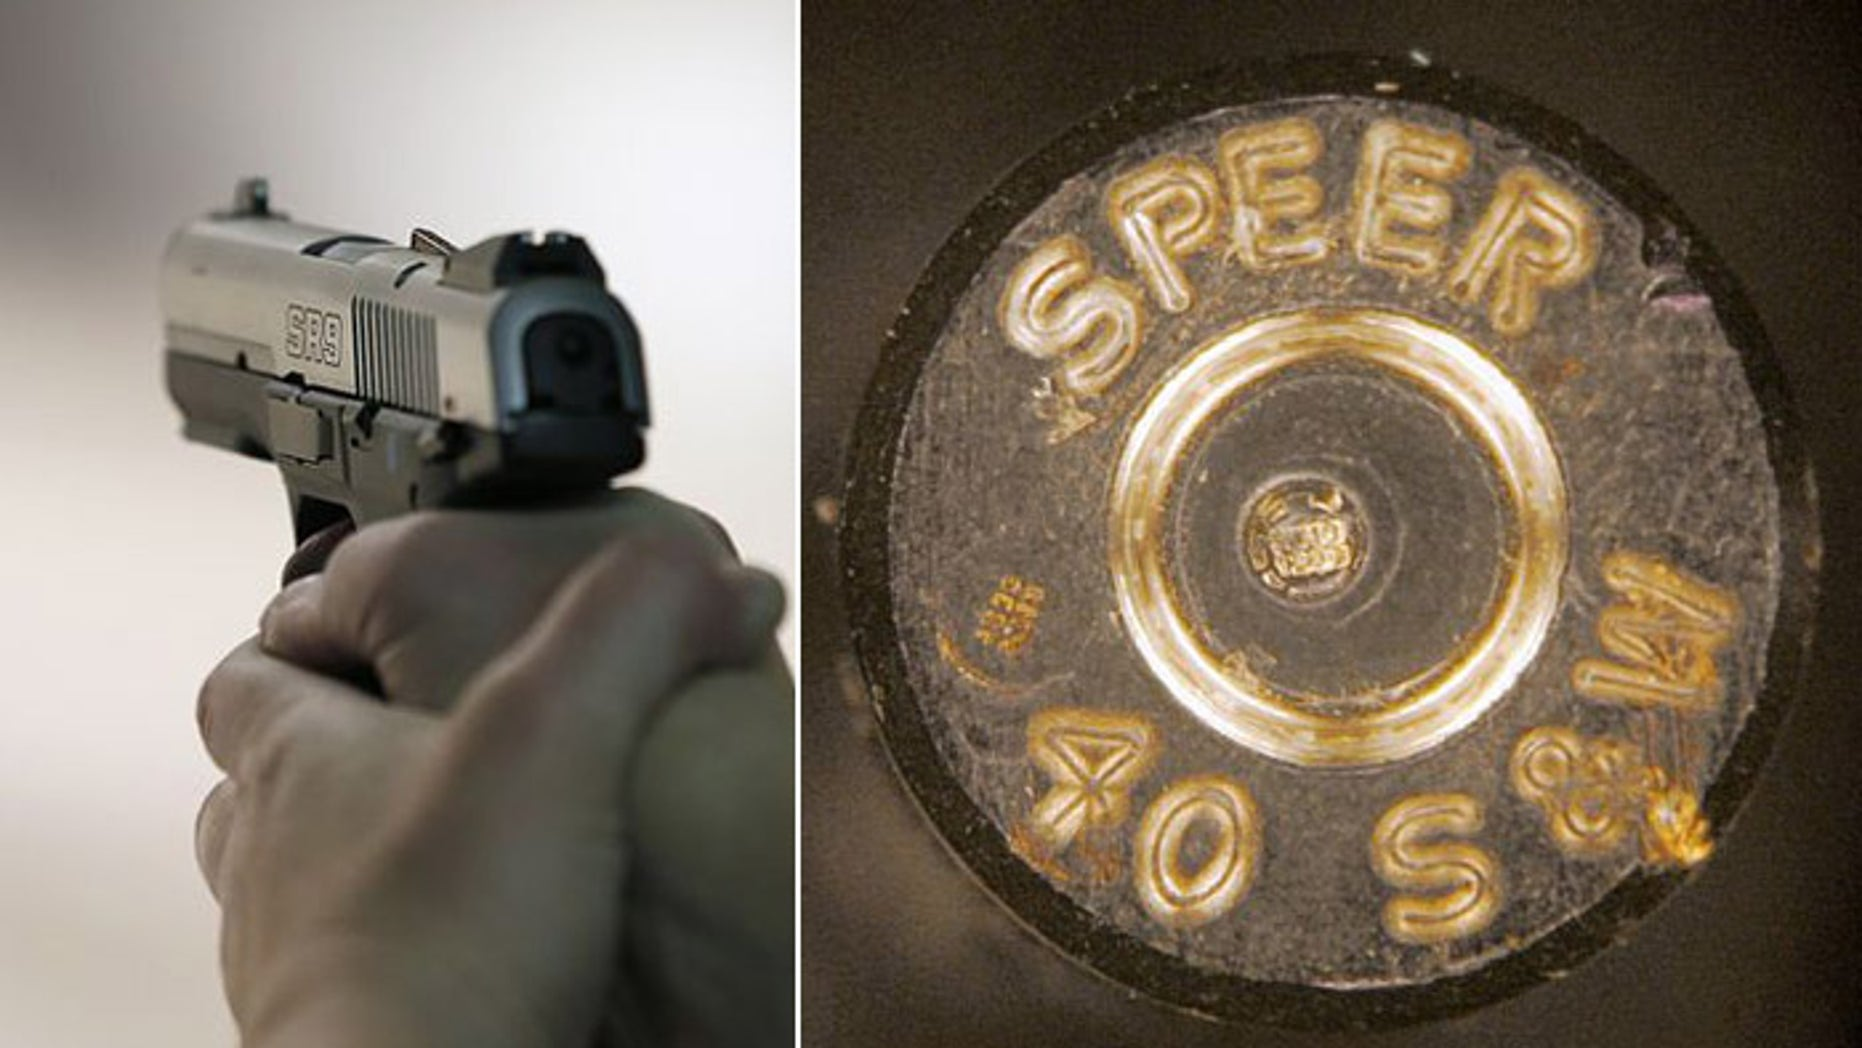 Microstamping technology is designed to leave a telltale indentation in the very center of the shell casing when the gun is fired. (AP)